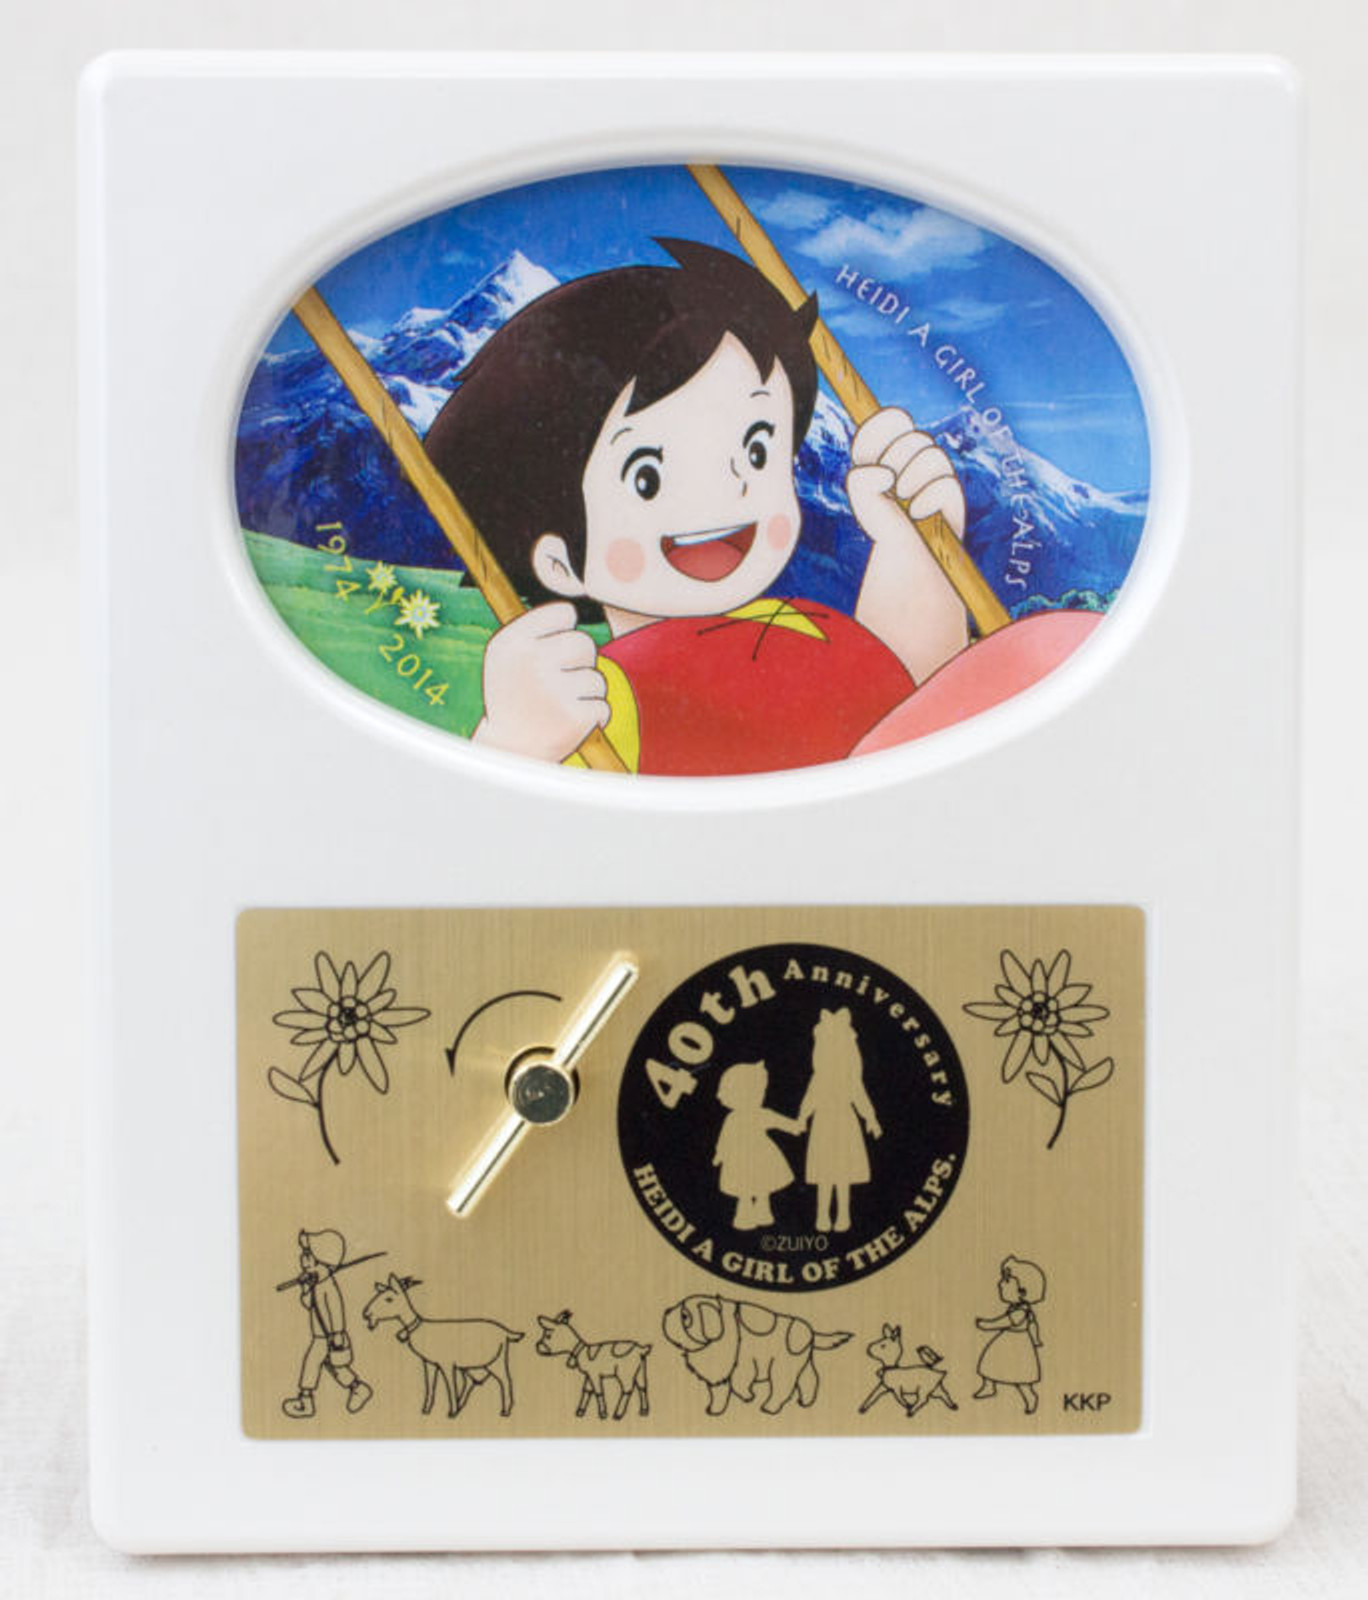 Heidi Girl of the Alps 40th Anniversary Limited Music Box Op Theme Song JAPAN 1